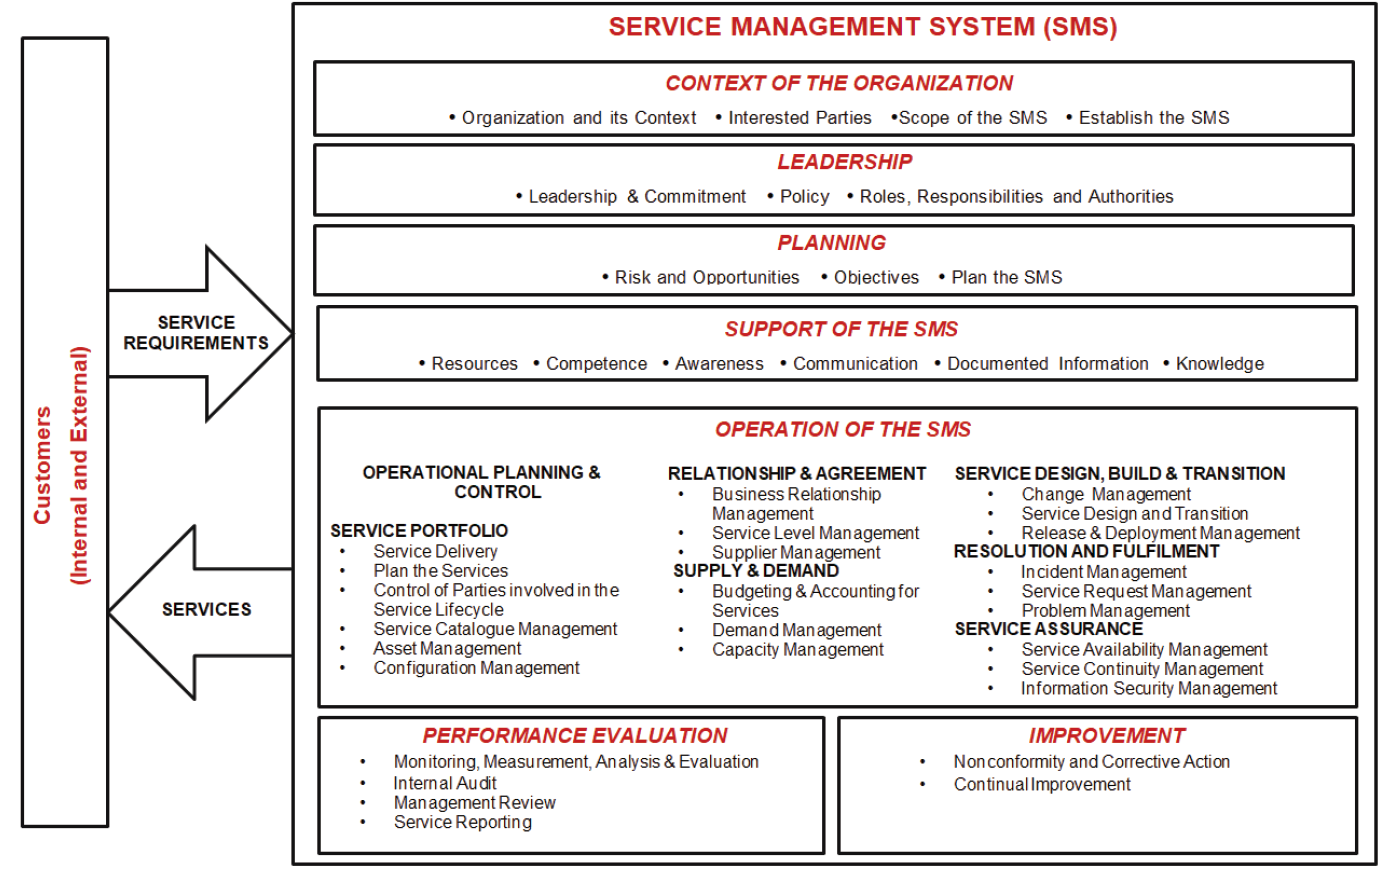 Structure of the Service Management System